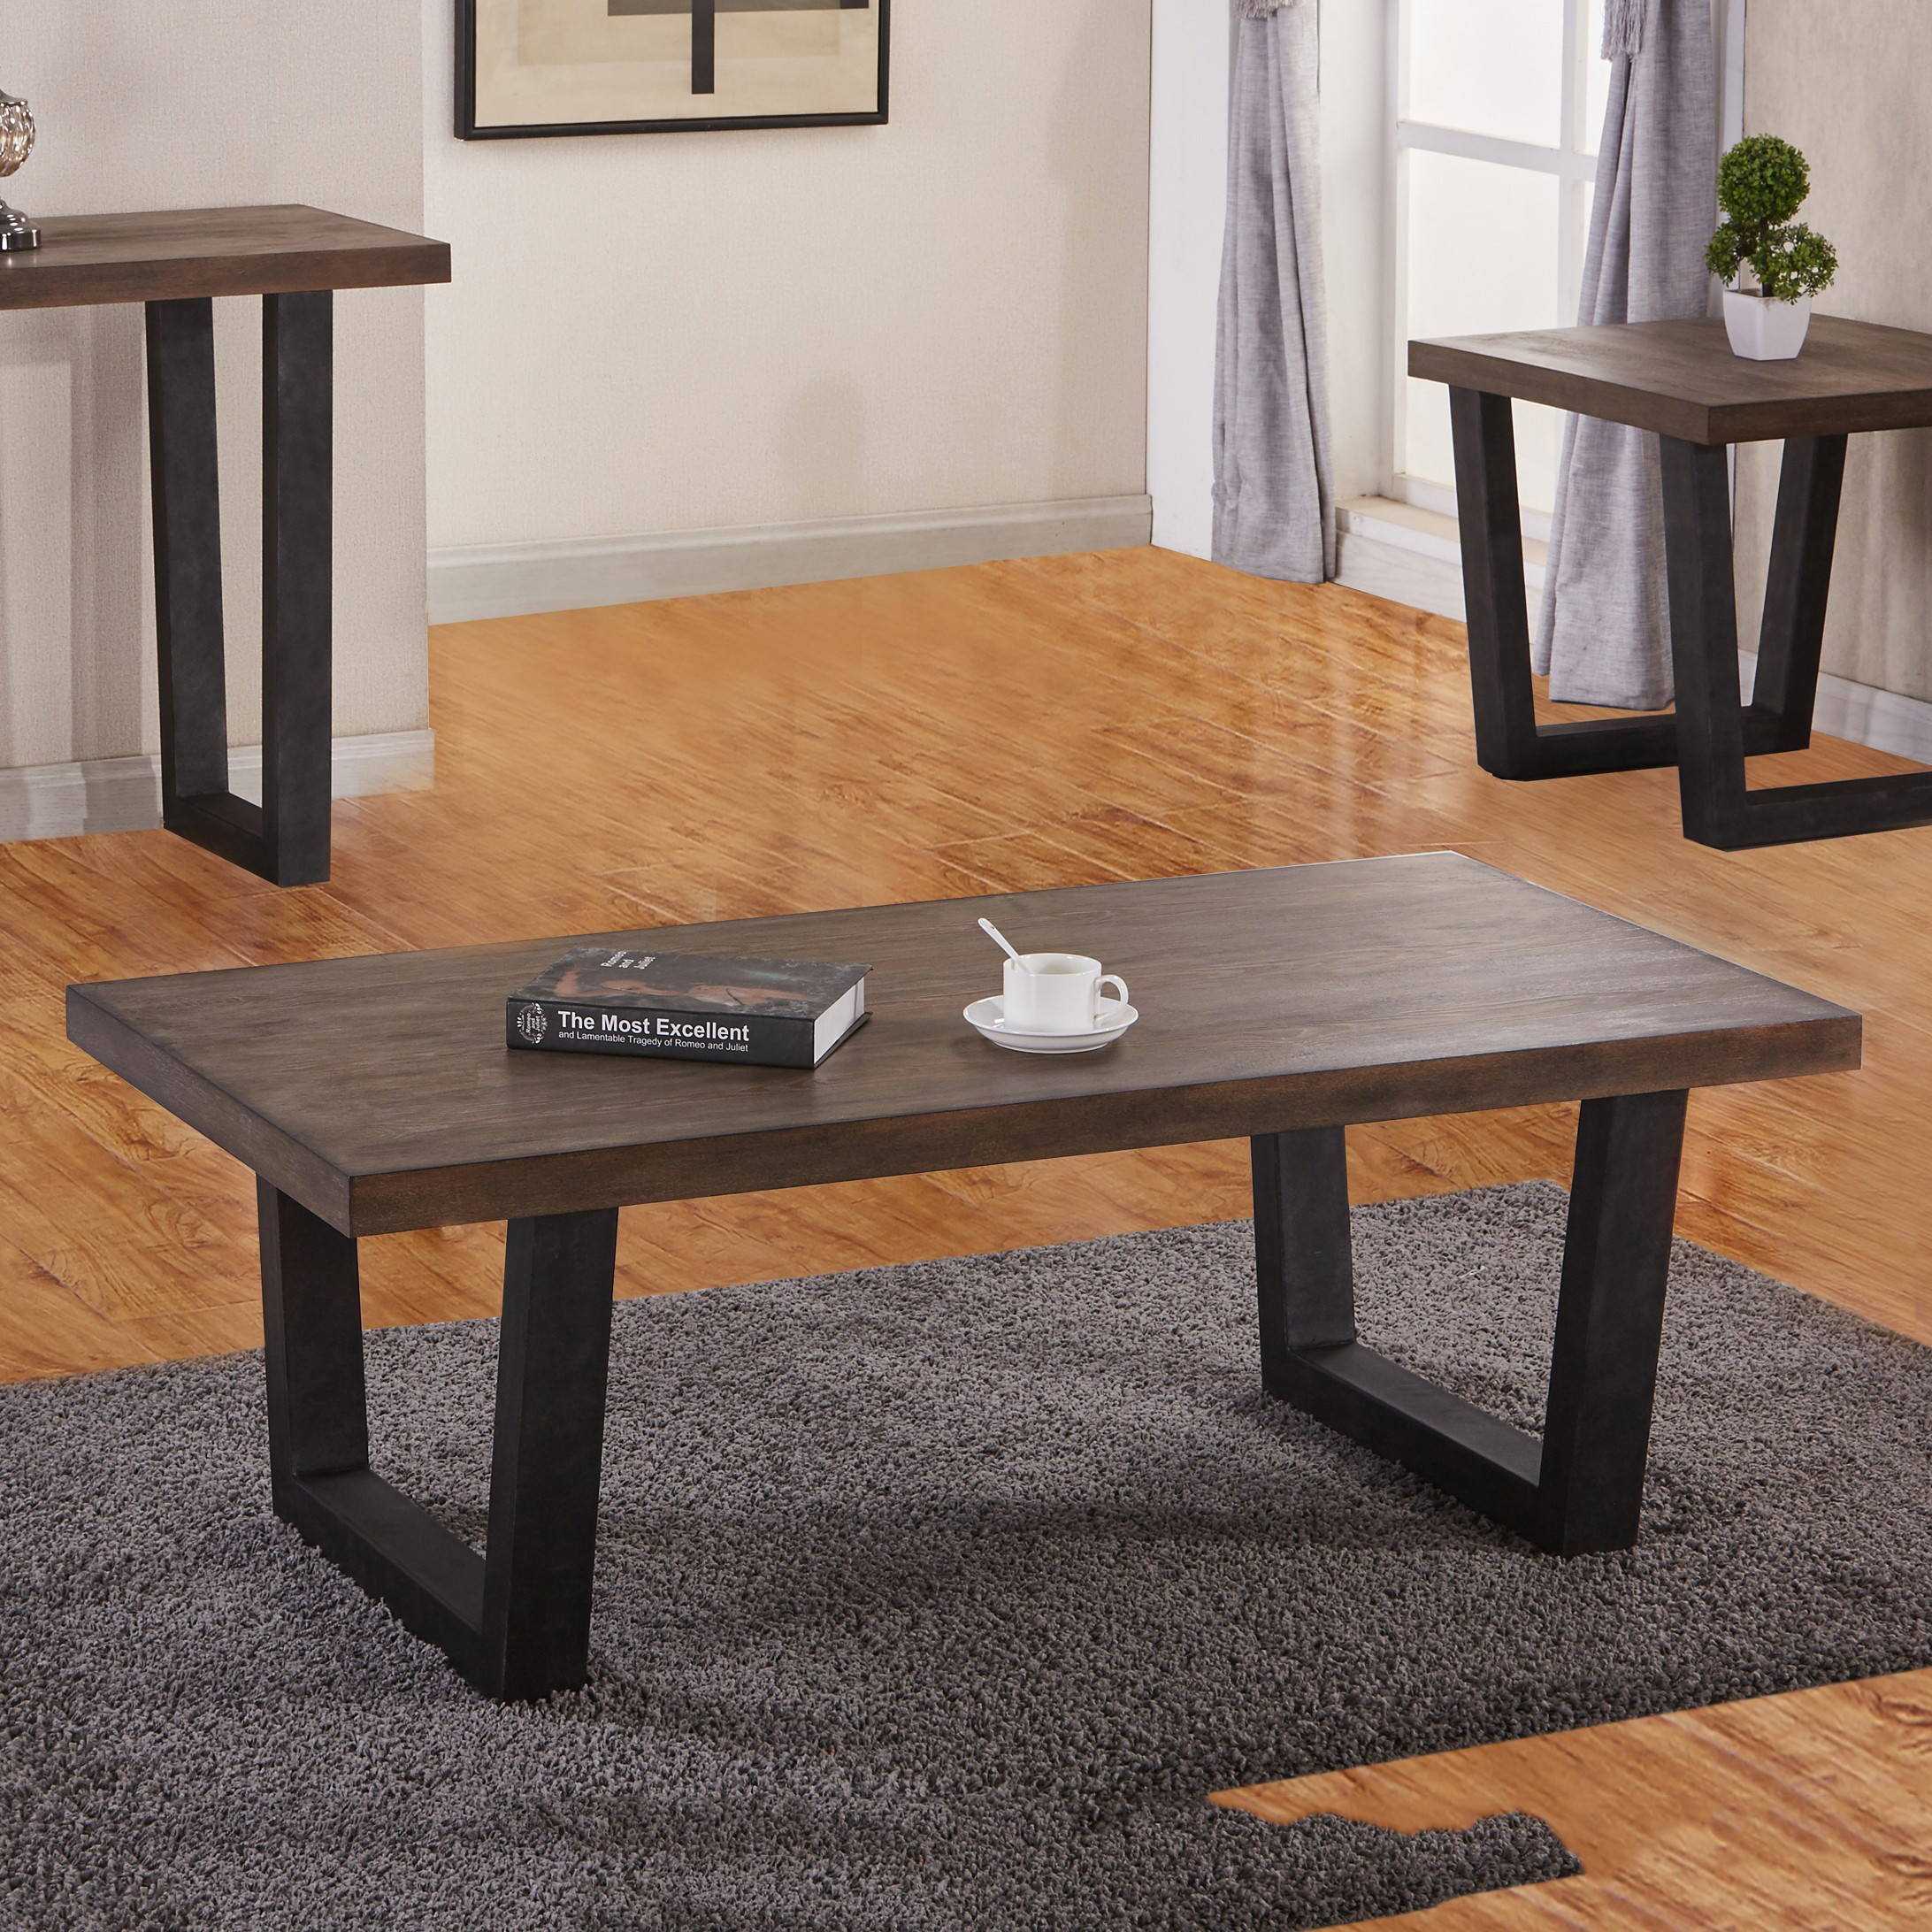 Best Quality Furniture Rustic Accent Tables w/ Metal legs